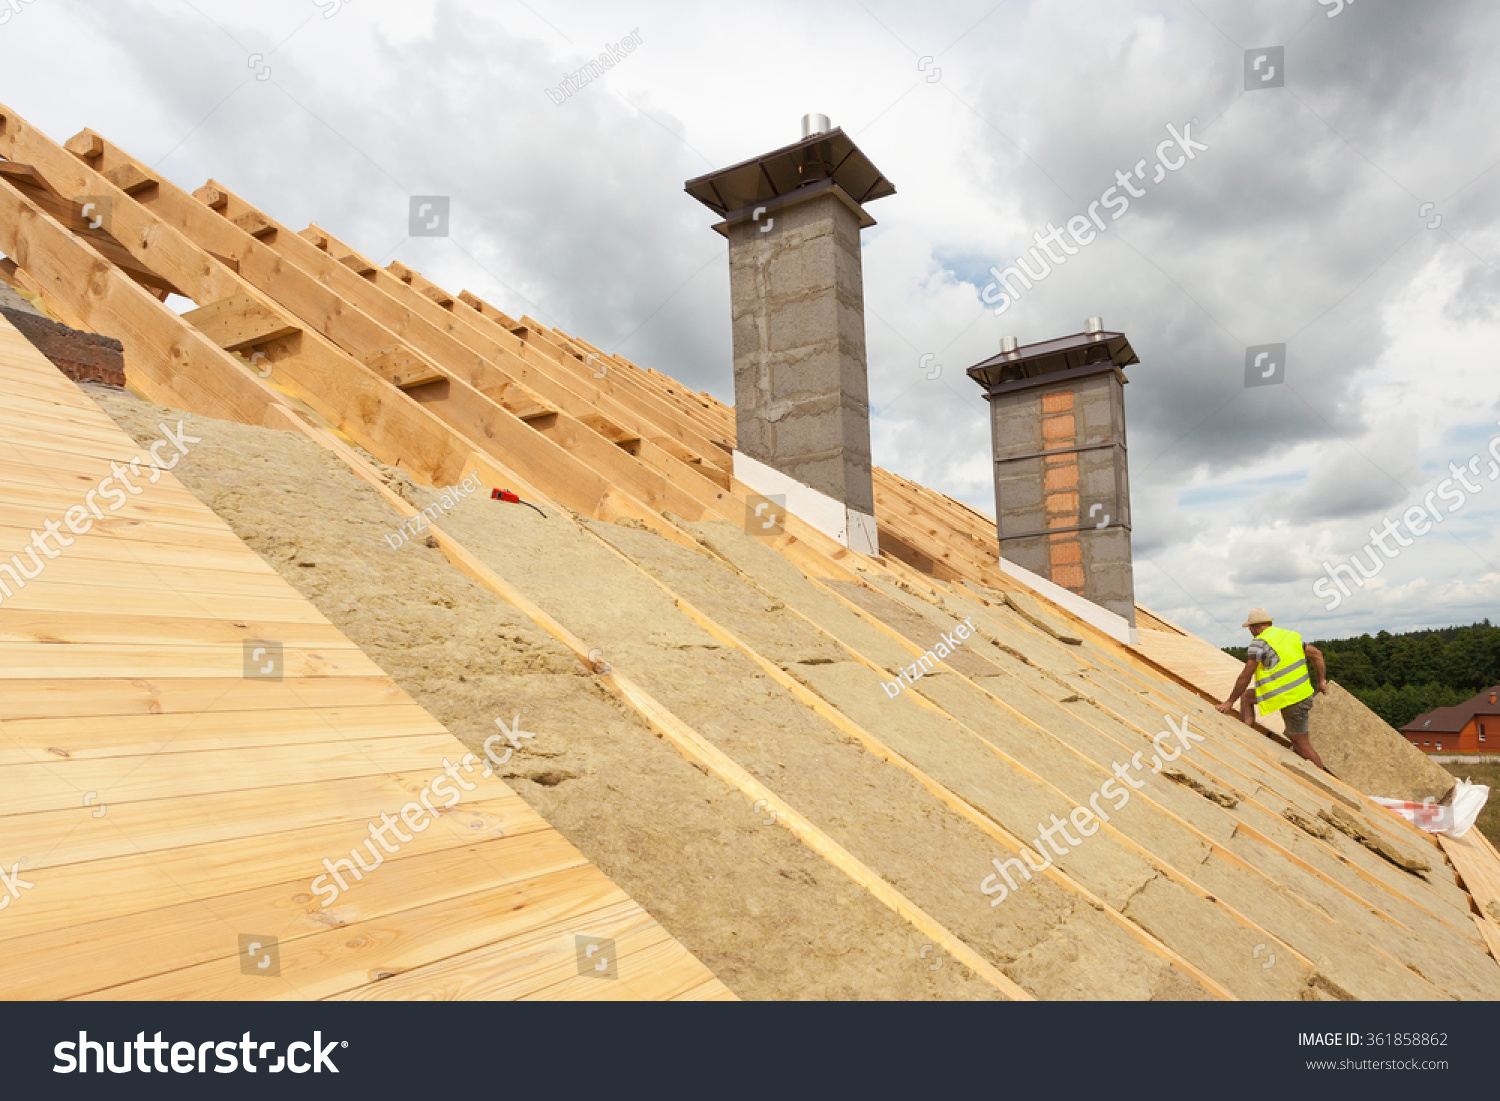 stock-photo-roofer-builder-worker-installing-roof-insulation-material-rockwool-on-new-house-under-construction-361858862